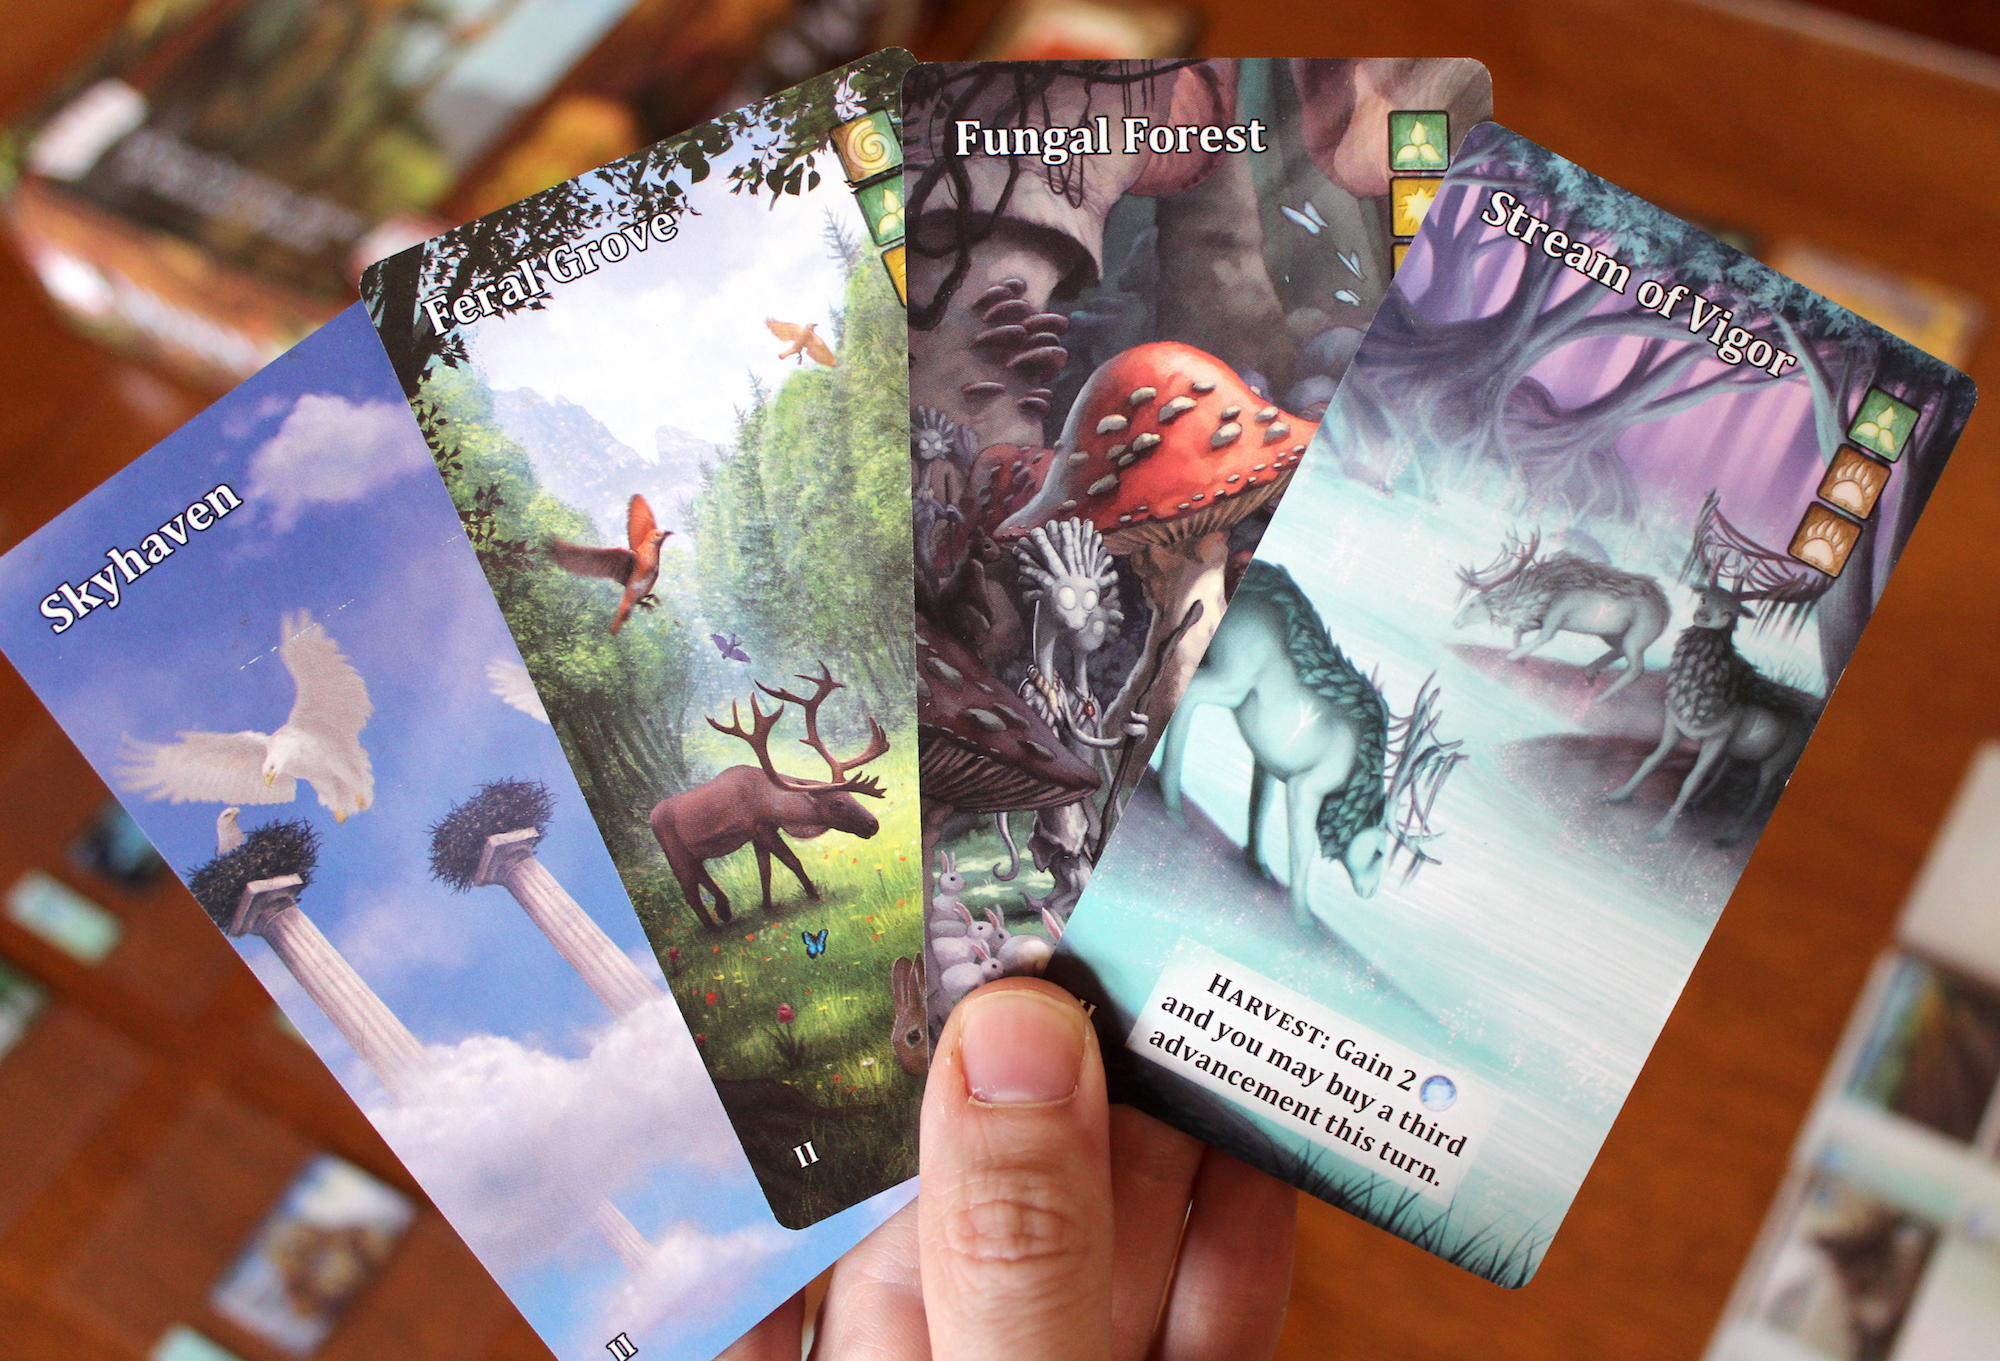 The art, especially on the vale cards, is terrific.